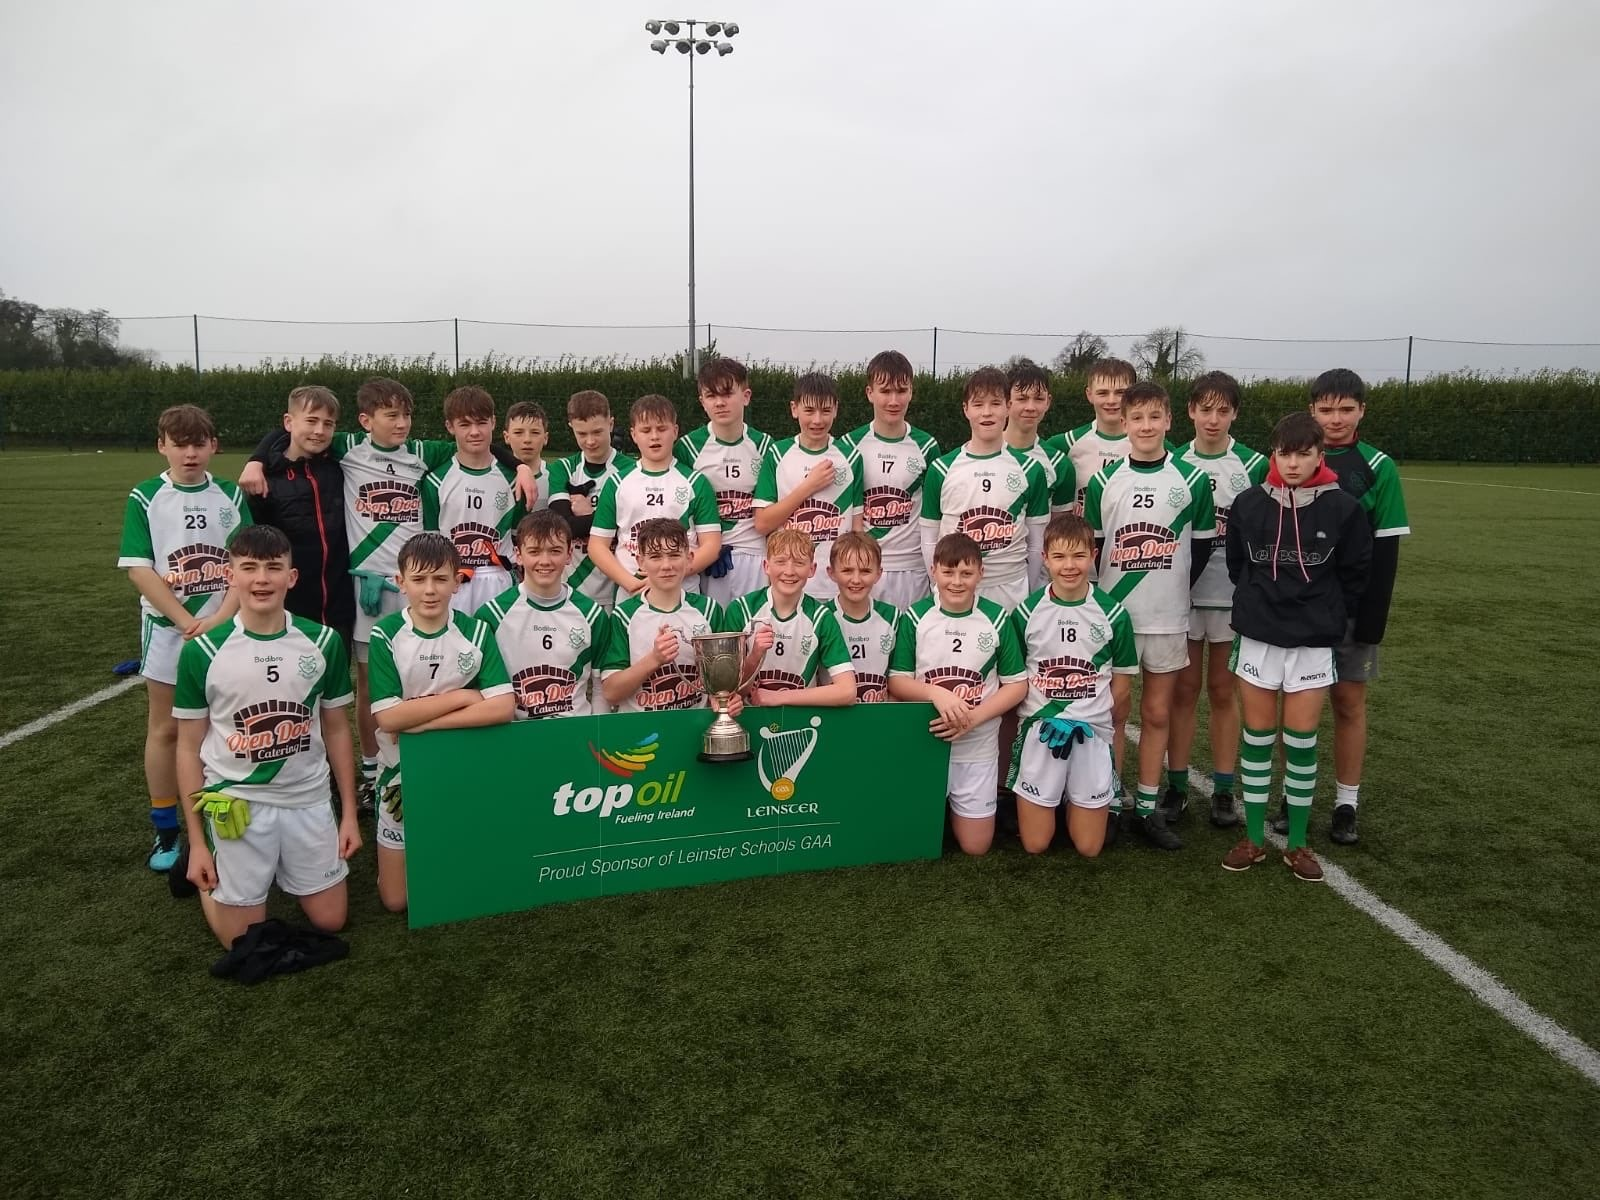 Ultan O'Reilly and Callum Mooney St. Peters Lein A Win Jan 2020